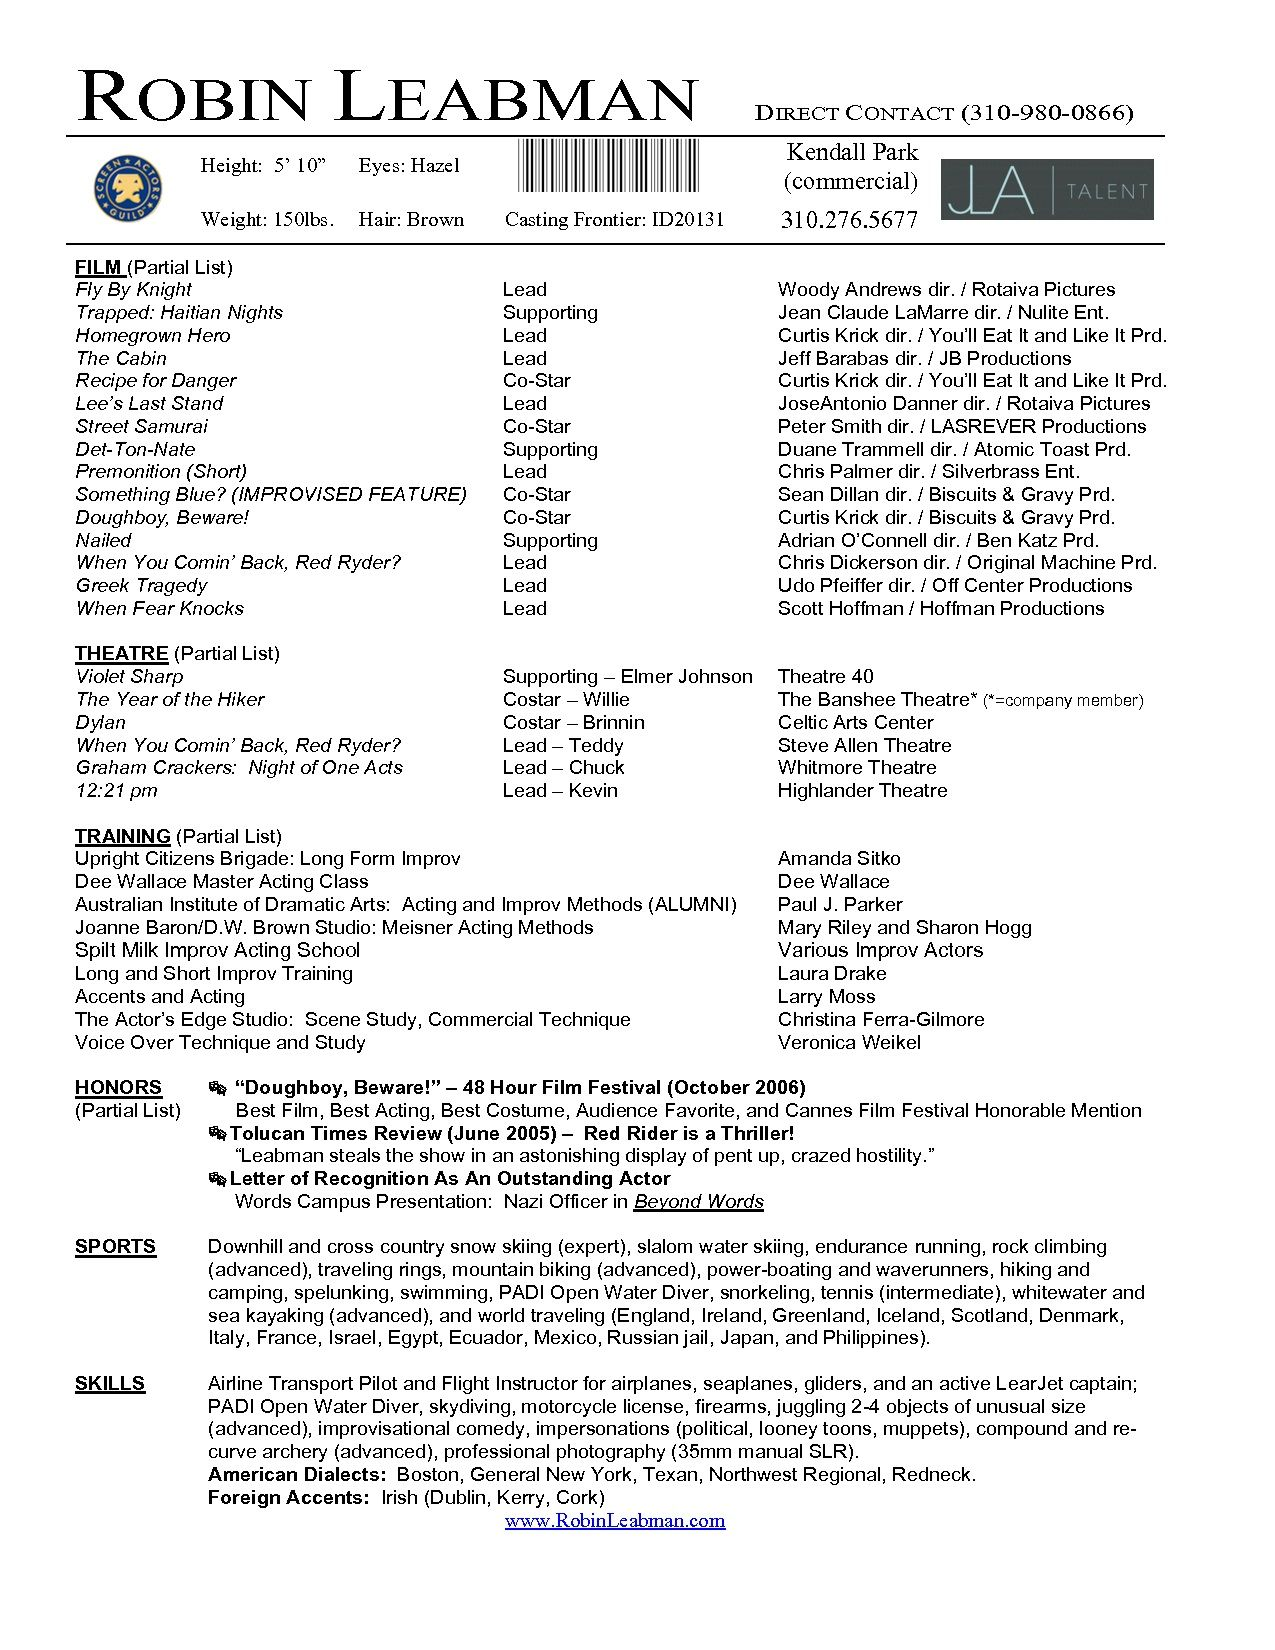 Actor Resume Template Microsoft Word - http://www.resumecareer ...